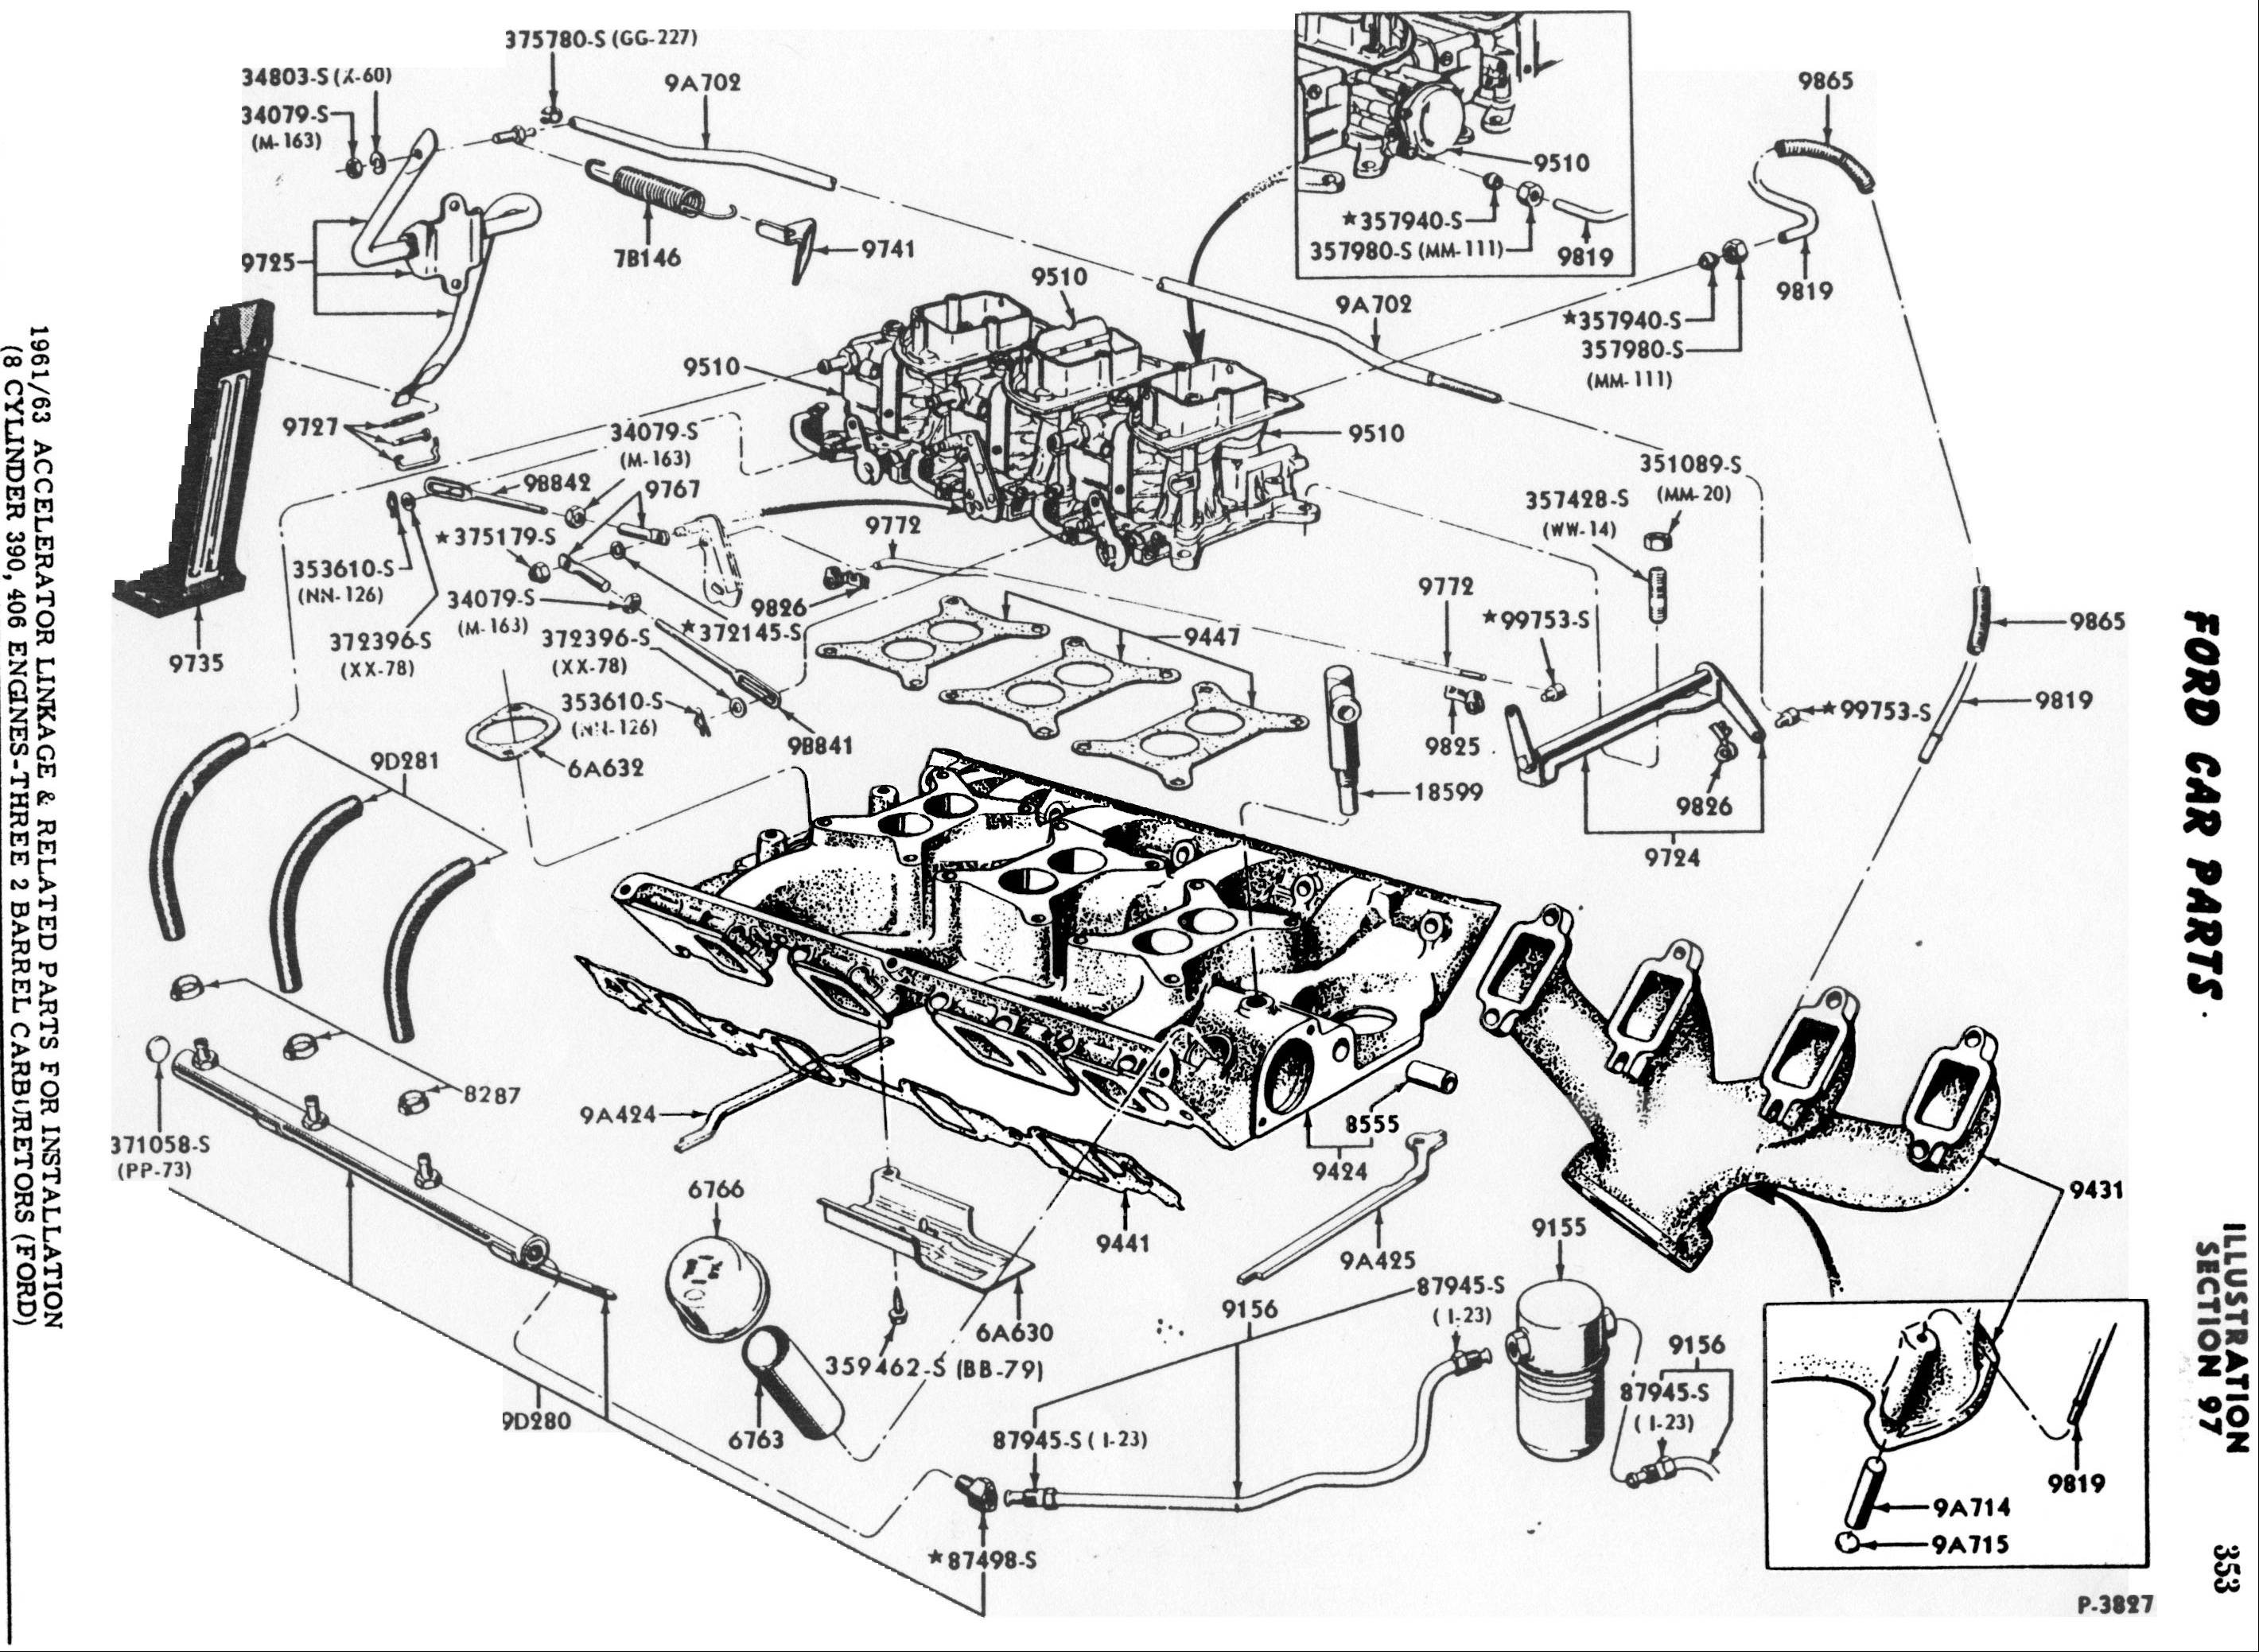 Diesel Engine Diagram Labeled 460 ford Engine Diagram Wiring Info • Of Diesel Engine Diagram Labeled